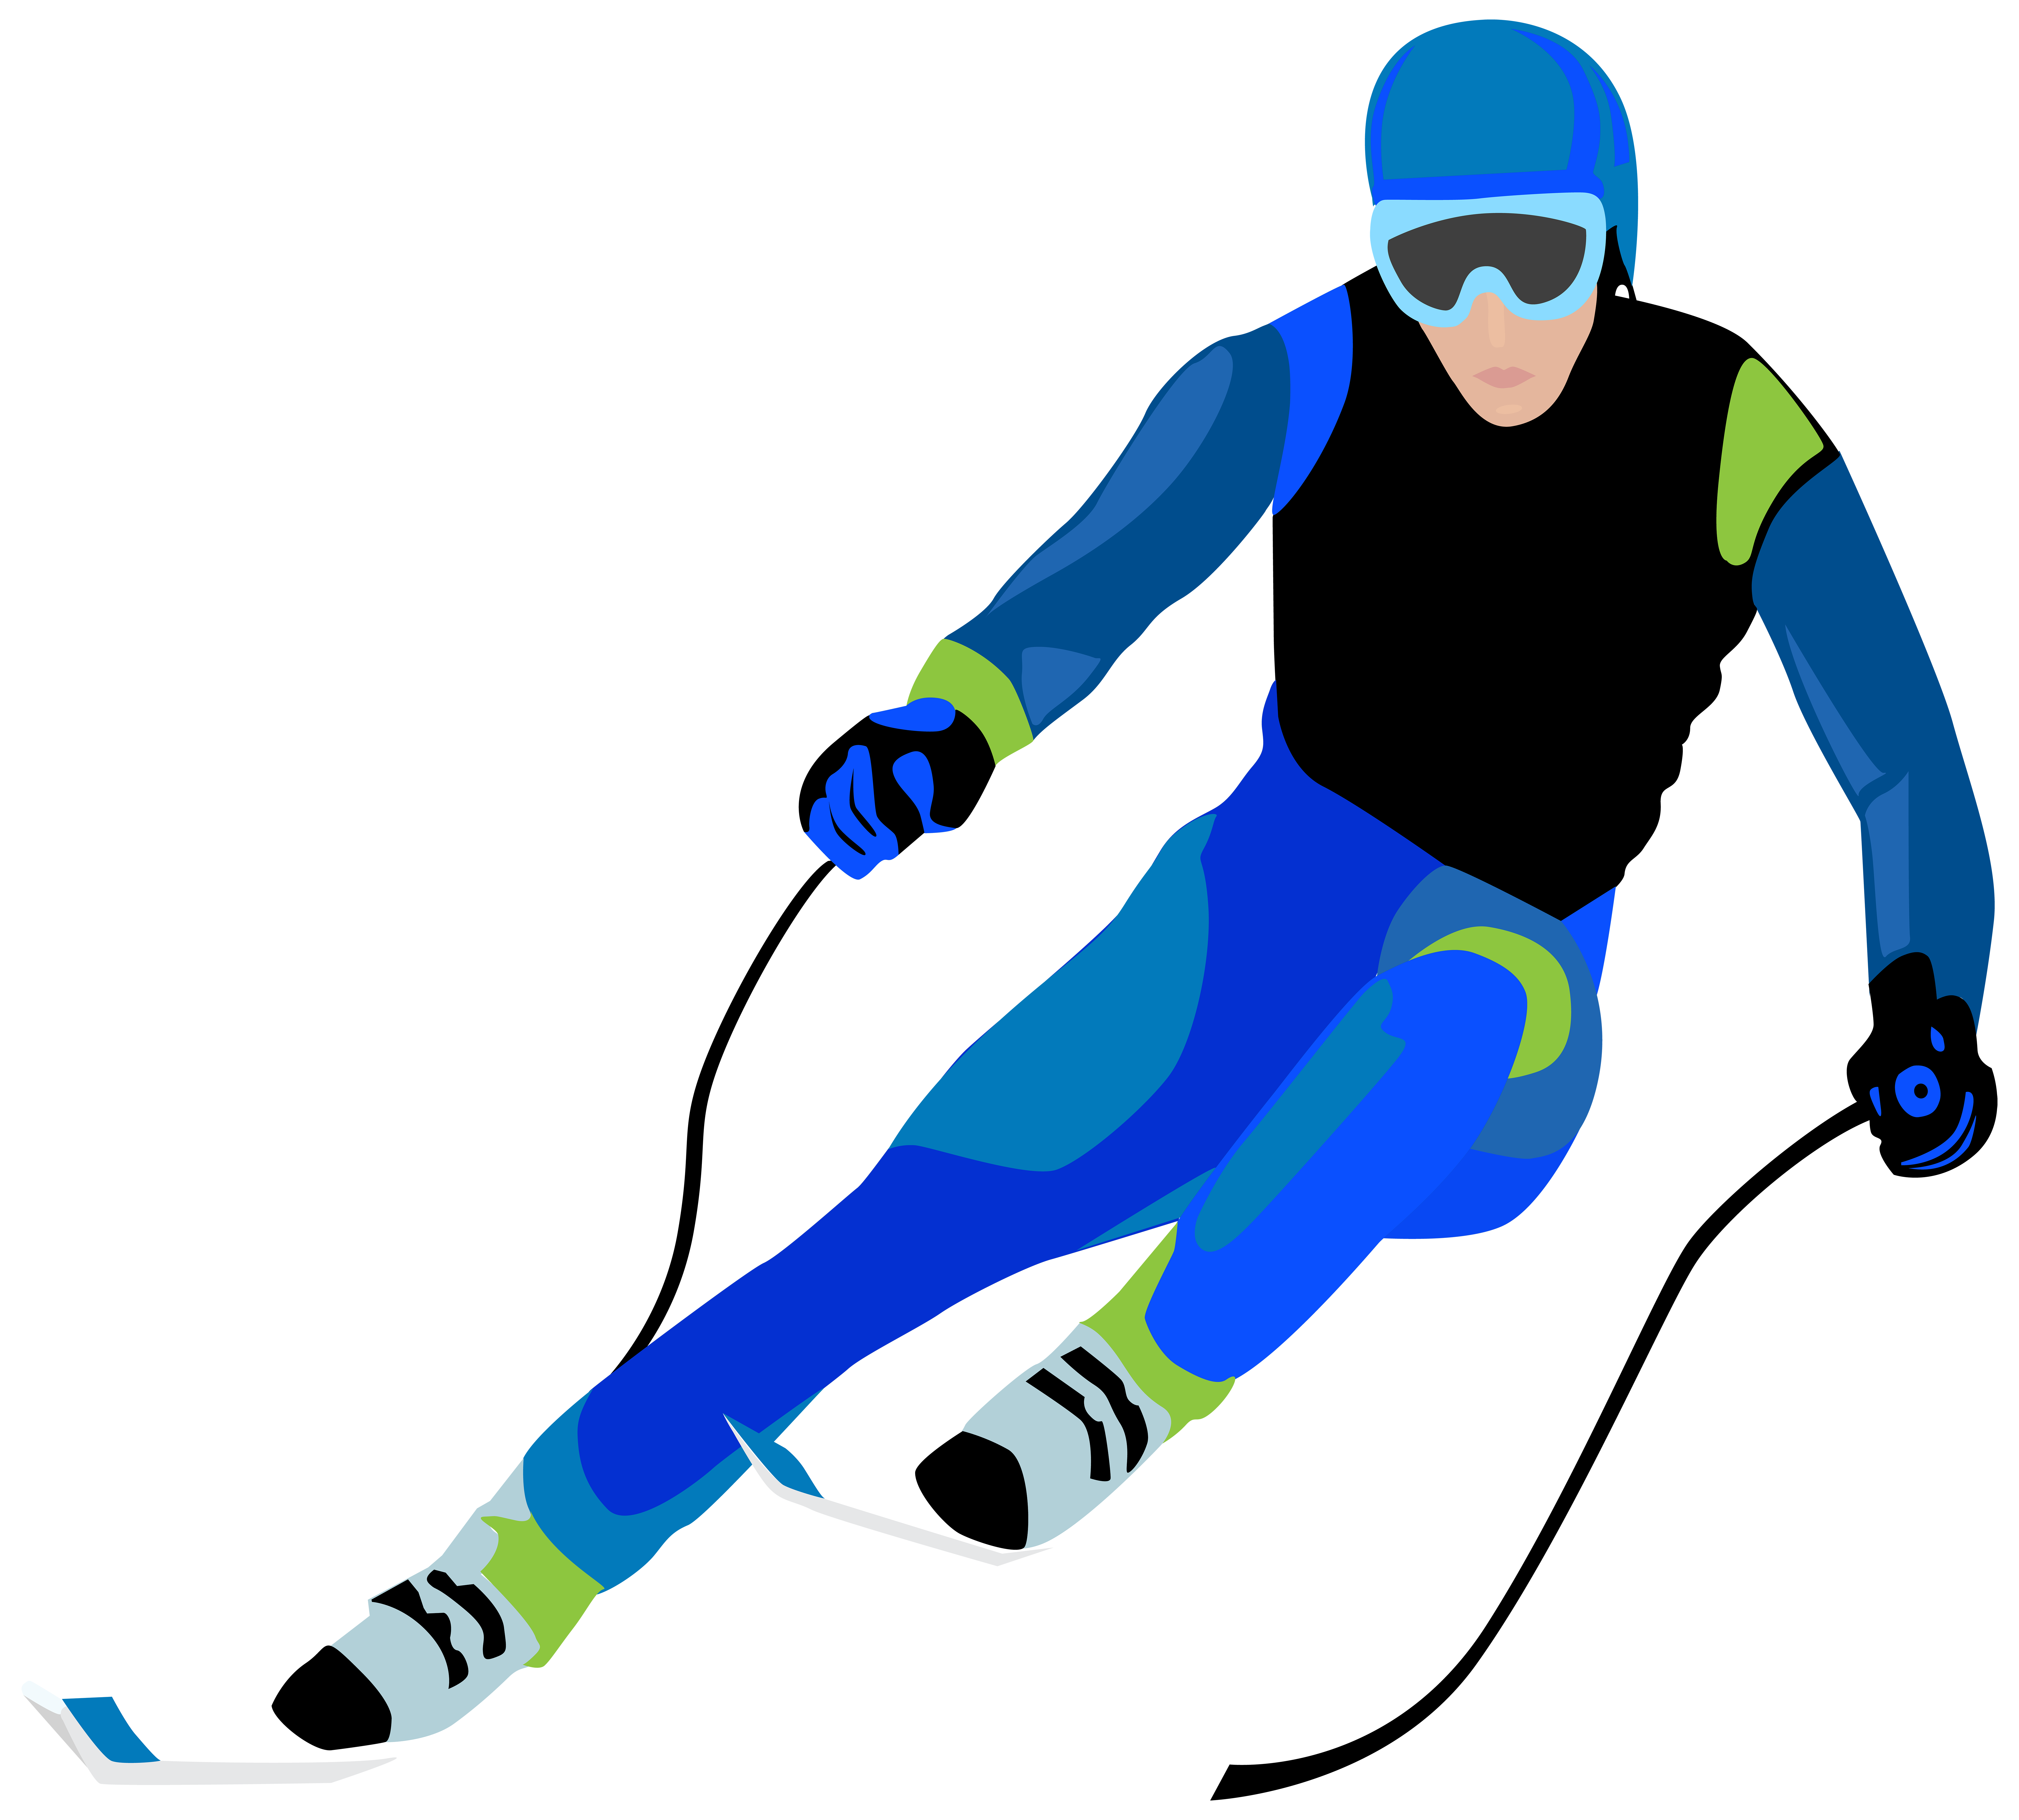 Skier clipart. Clip art image gallery picture free stock